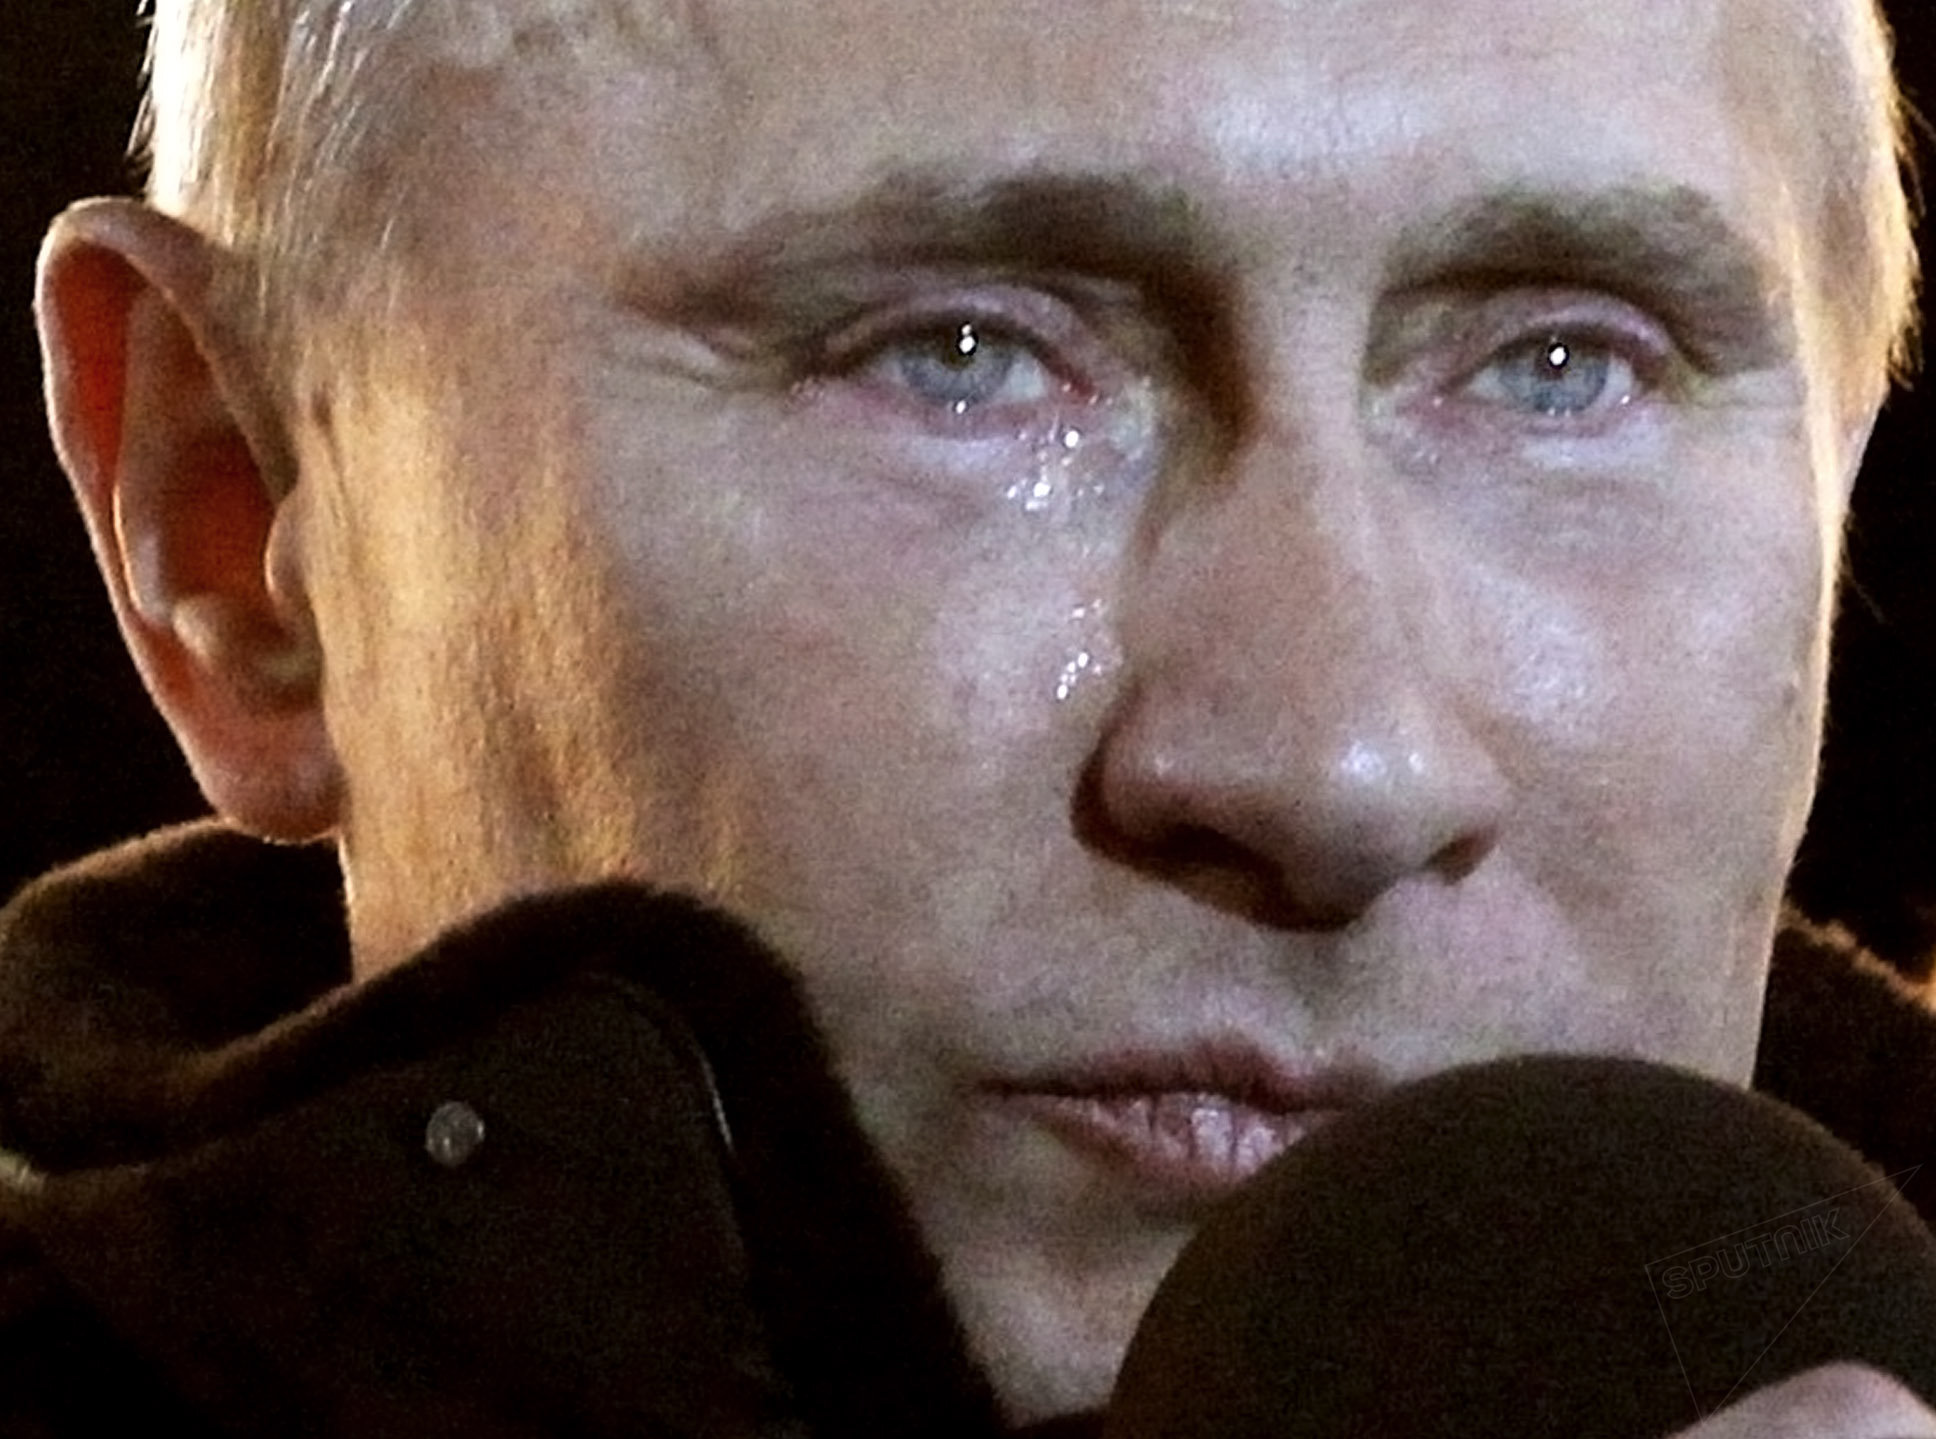 FILE - In this Sunday, March 4, 2012 file photo, Russian Prime Minister Vladimir Putin, who claimed victory in Russia's presidential election, tears up as he reacts at a massive rally of his supporters at Manezh square outside Kremlin, in Moscow.